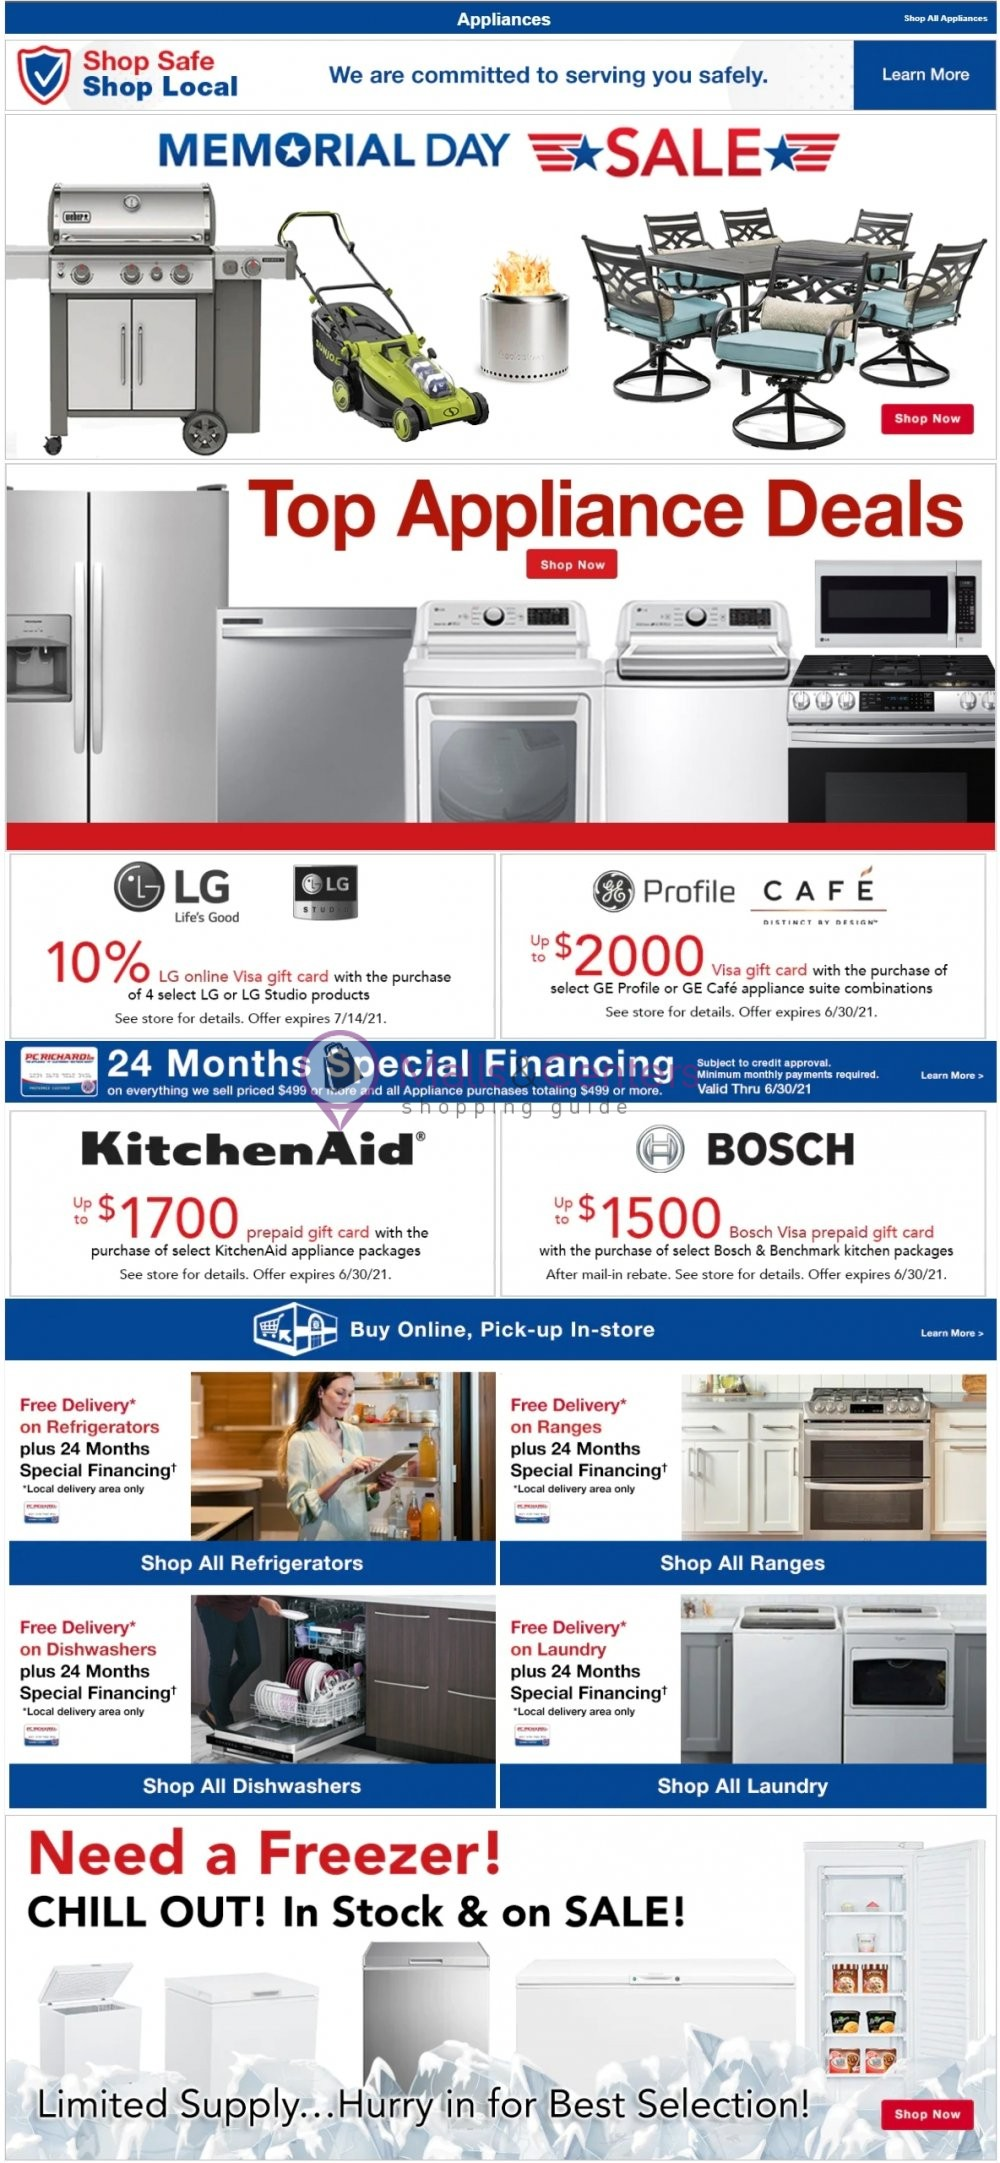 weekly ads P.C. Richard & Son - page 1 - mallscenters.com